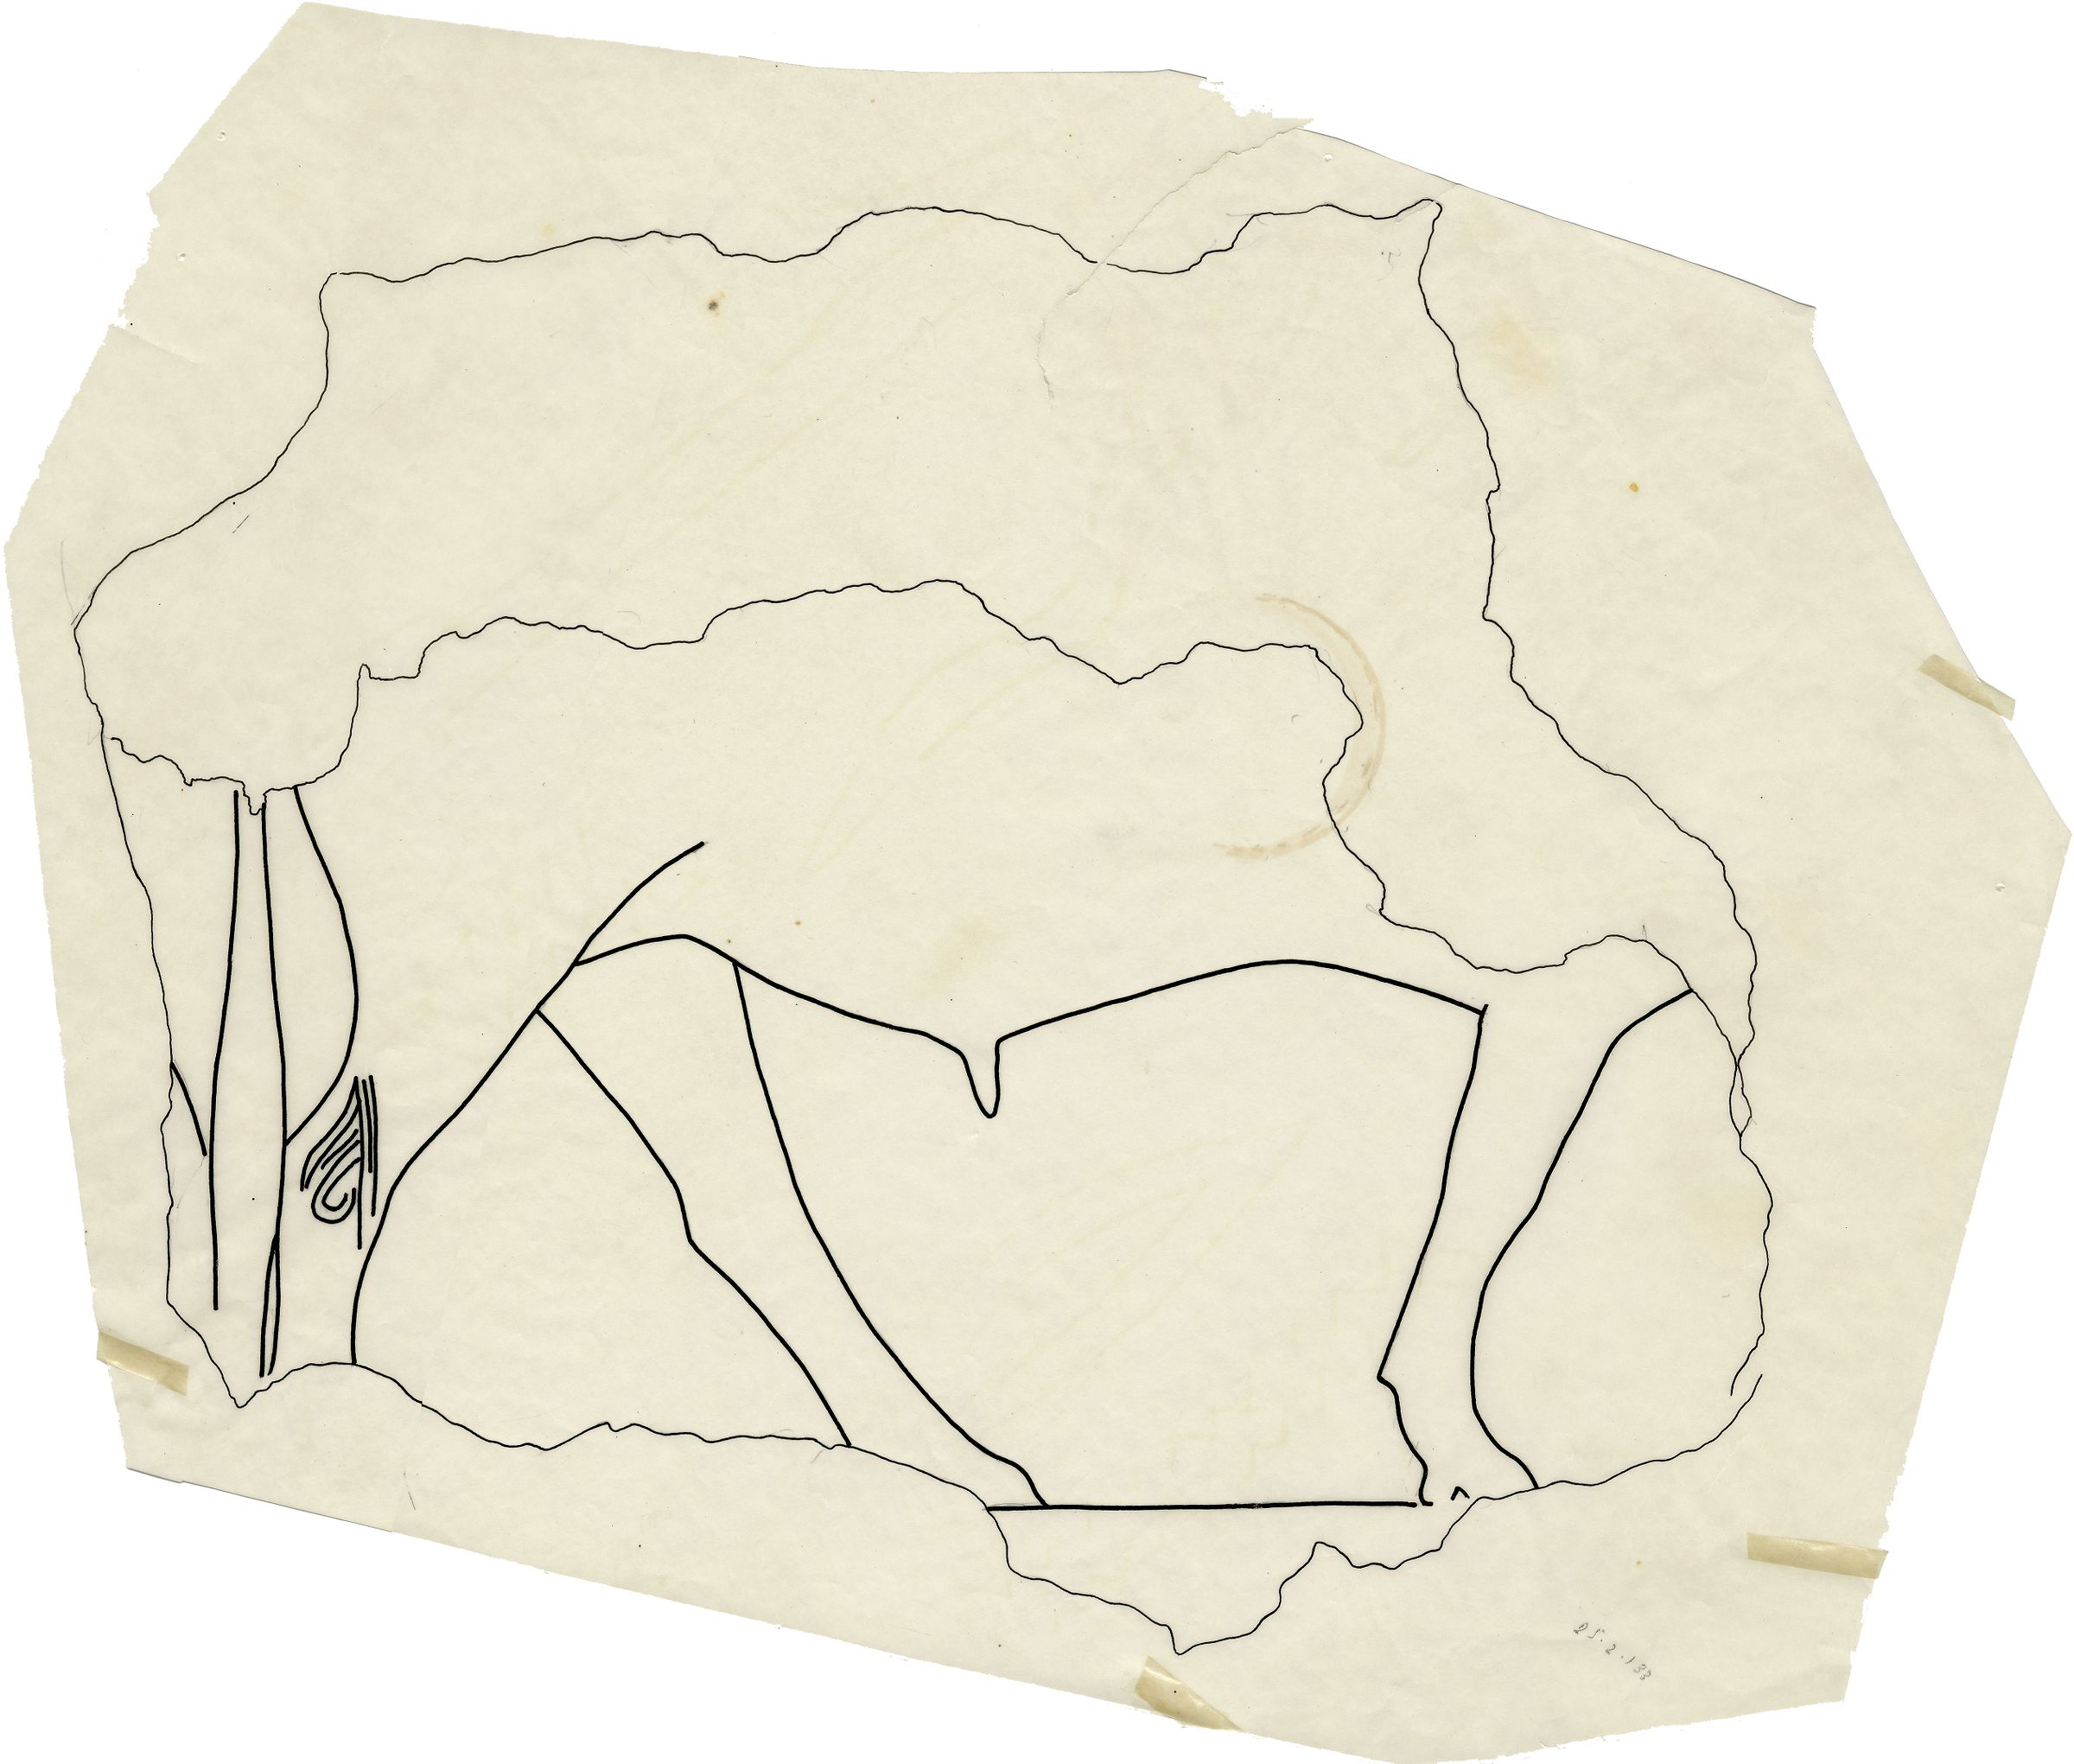 Drawings: G 7510: fragment of relief from interior chapel